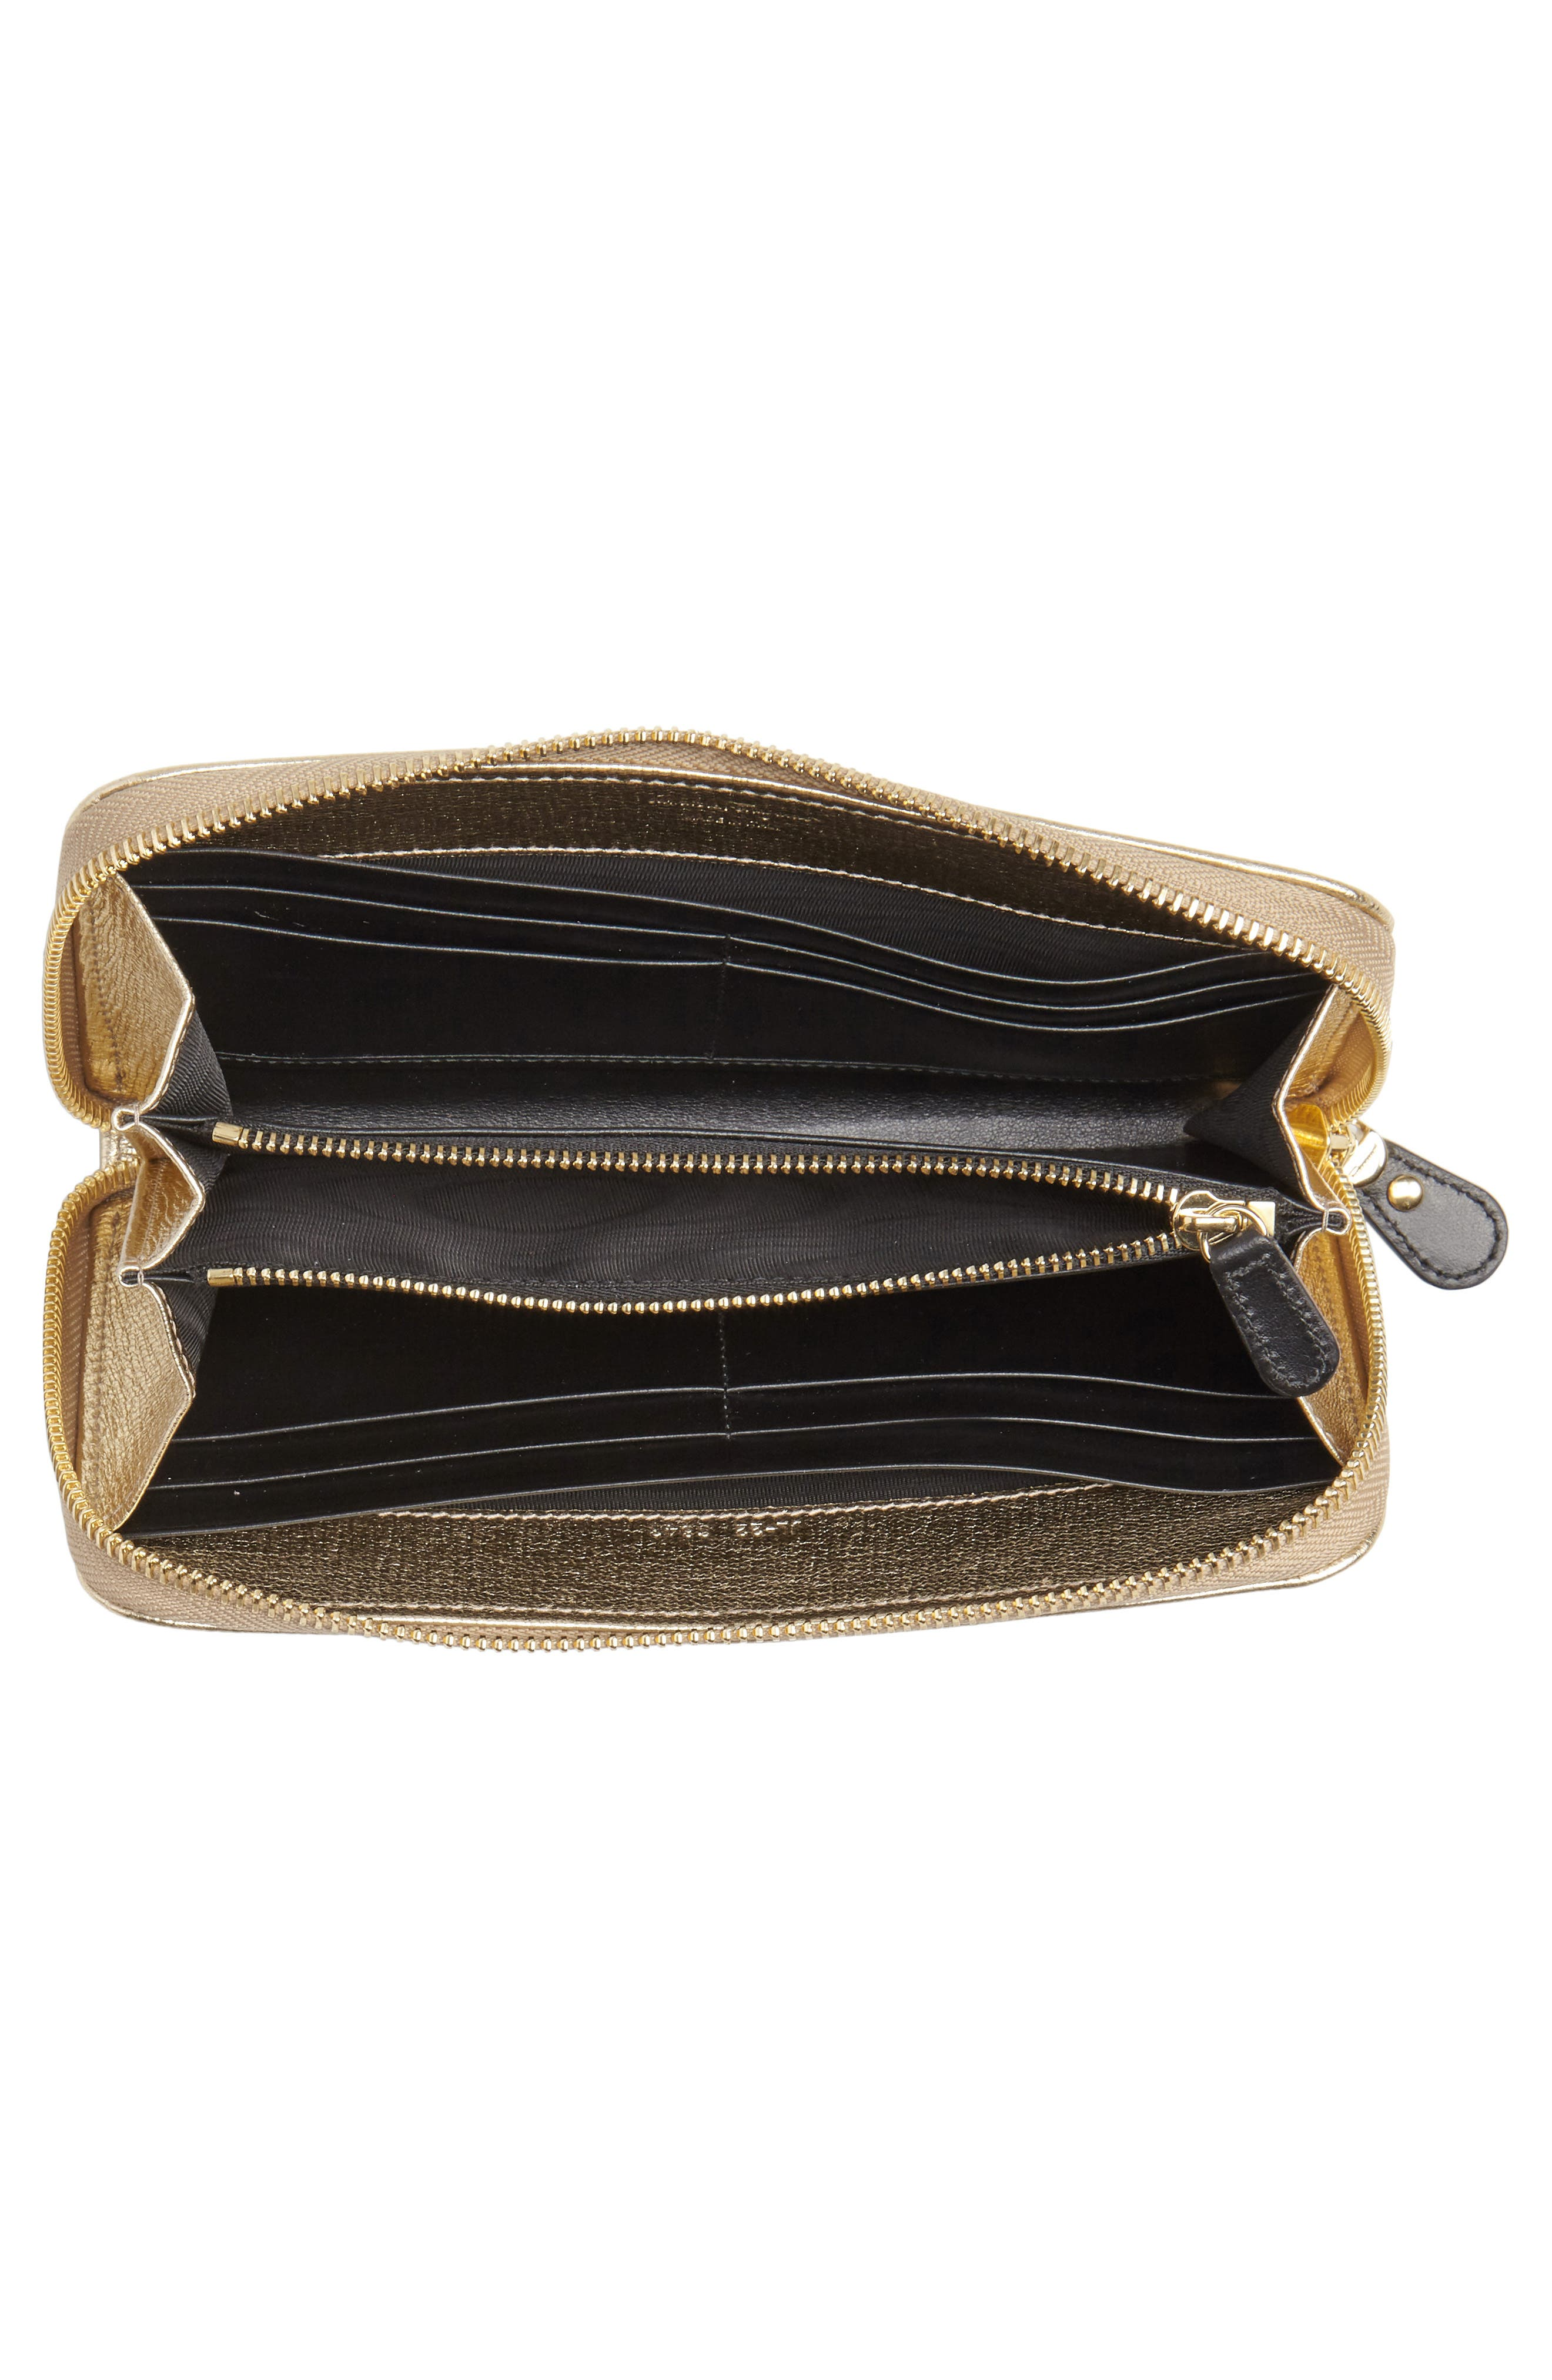 Quilted Gancio Leather Zip Around Wallet,                             Alternate thumbnail 4, color,                             GOLD METALLIC LEATHER